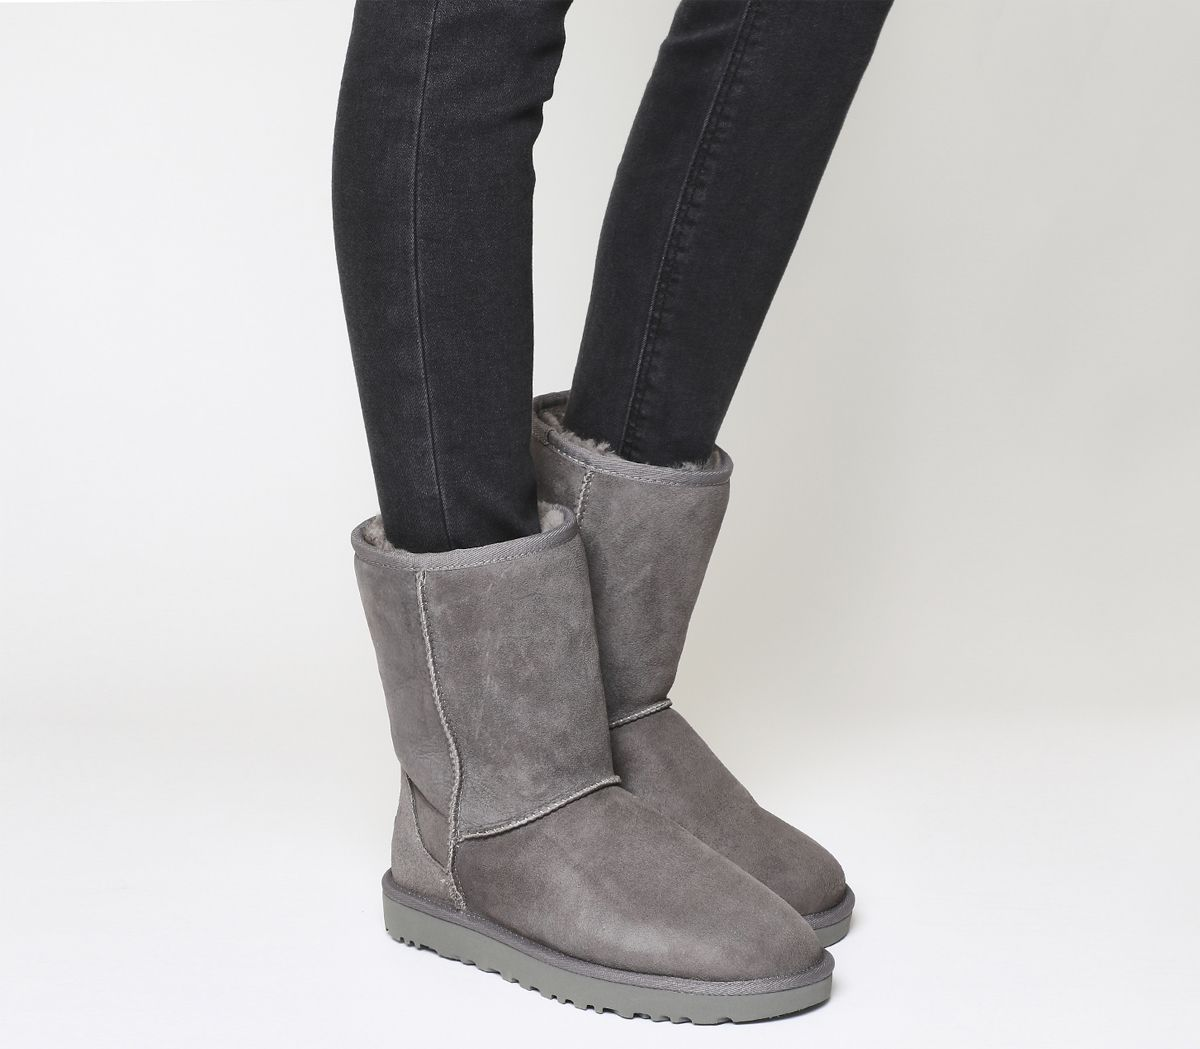 2f17849b1 UGG Classic Short II Boots Grey Suede - Ankle Boots